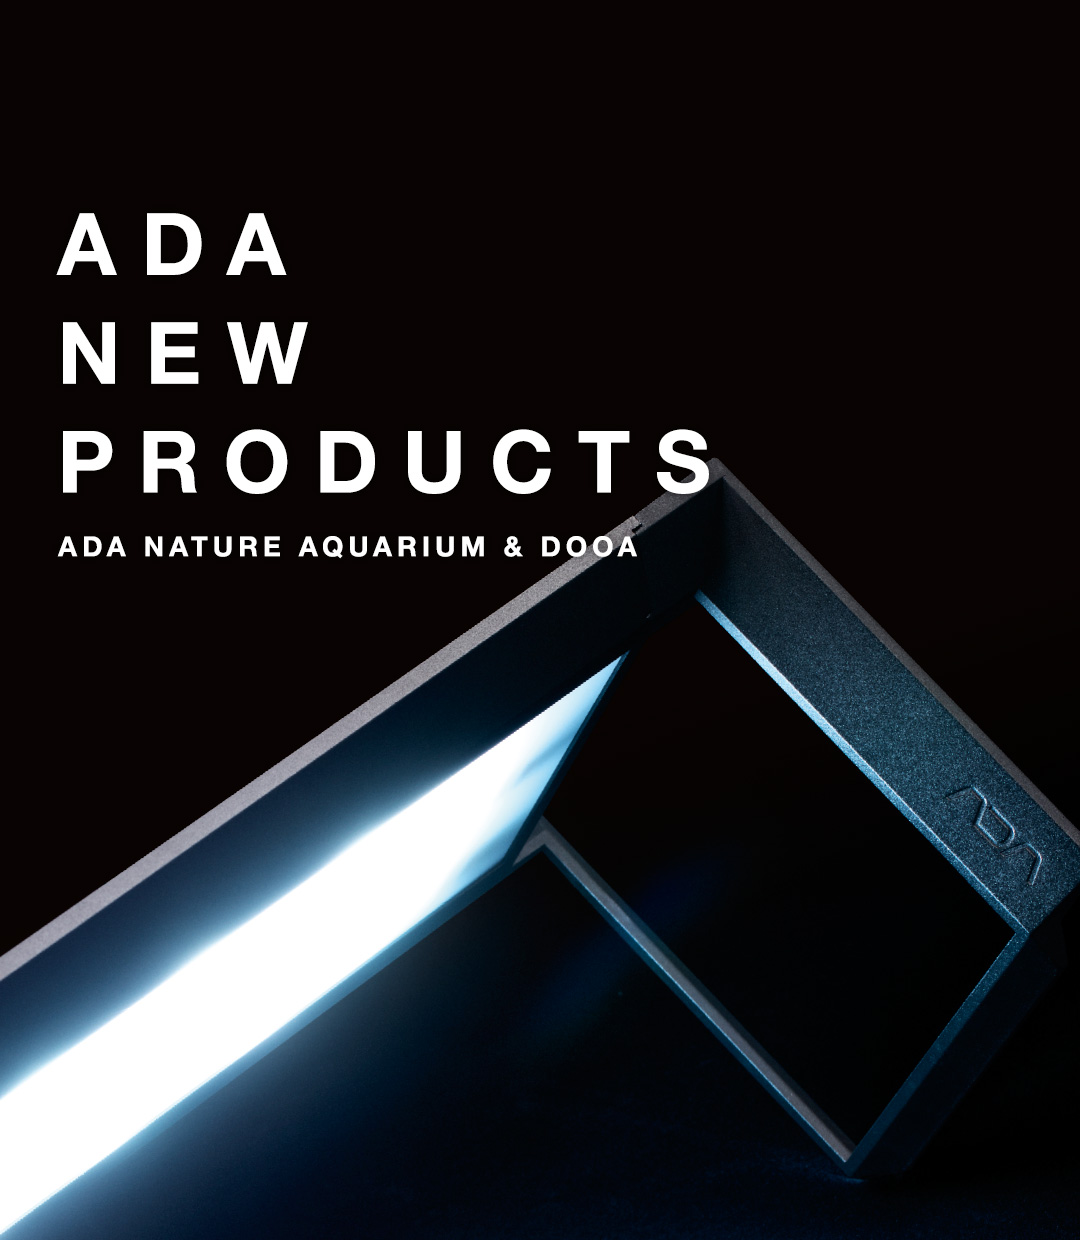 ADA NEW PRODUCTS 「ADAが提案する新しいスタイル」